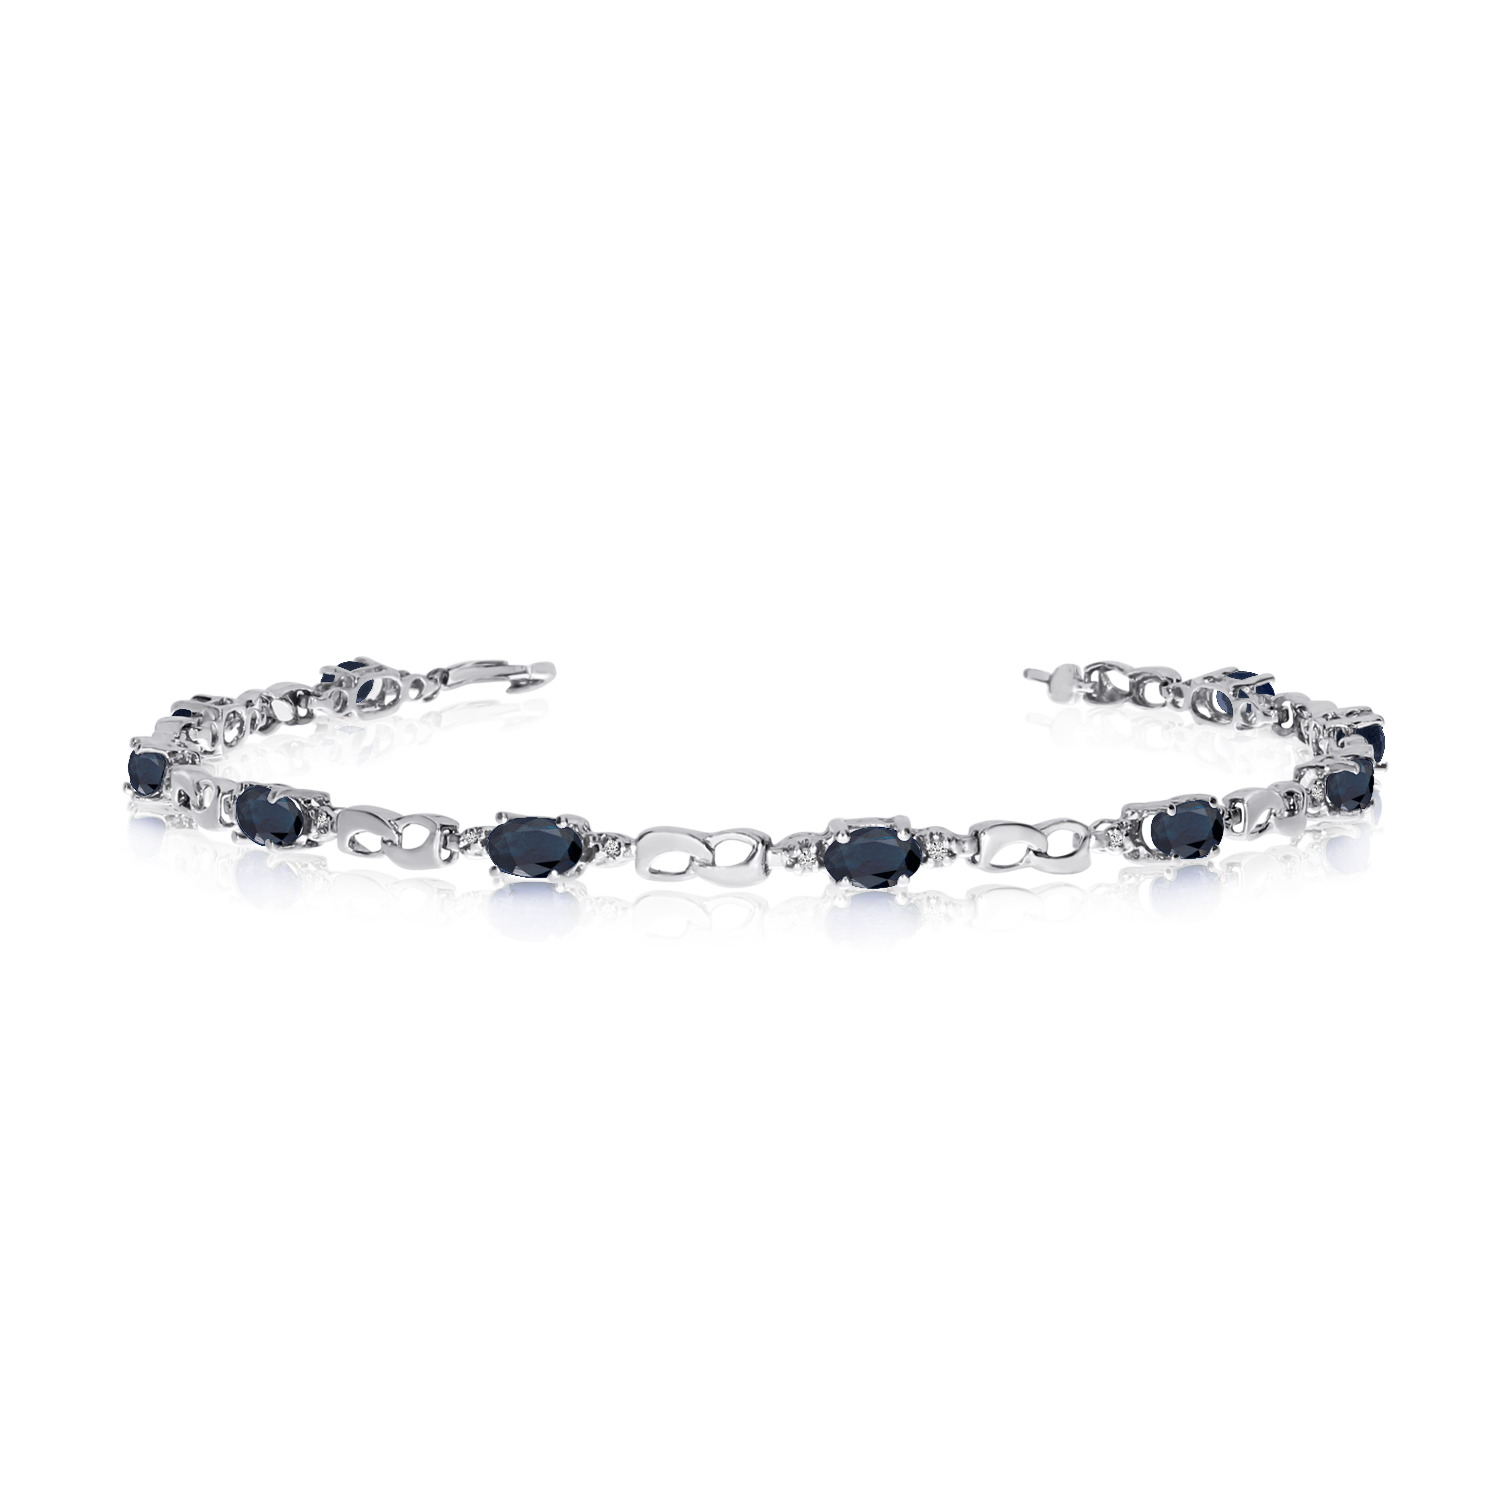 14K White Gold Oval Sapphire and Diamond Link Bracelet by